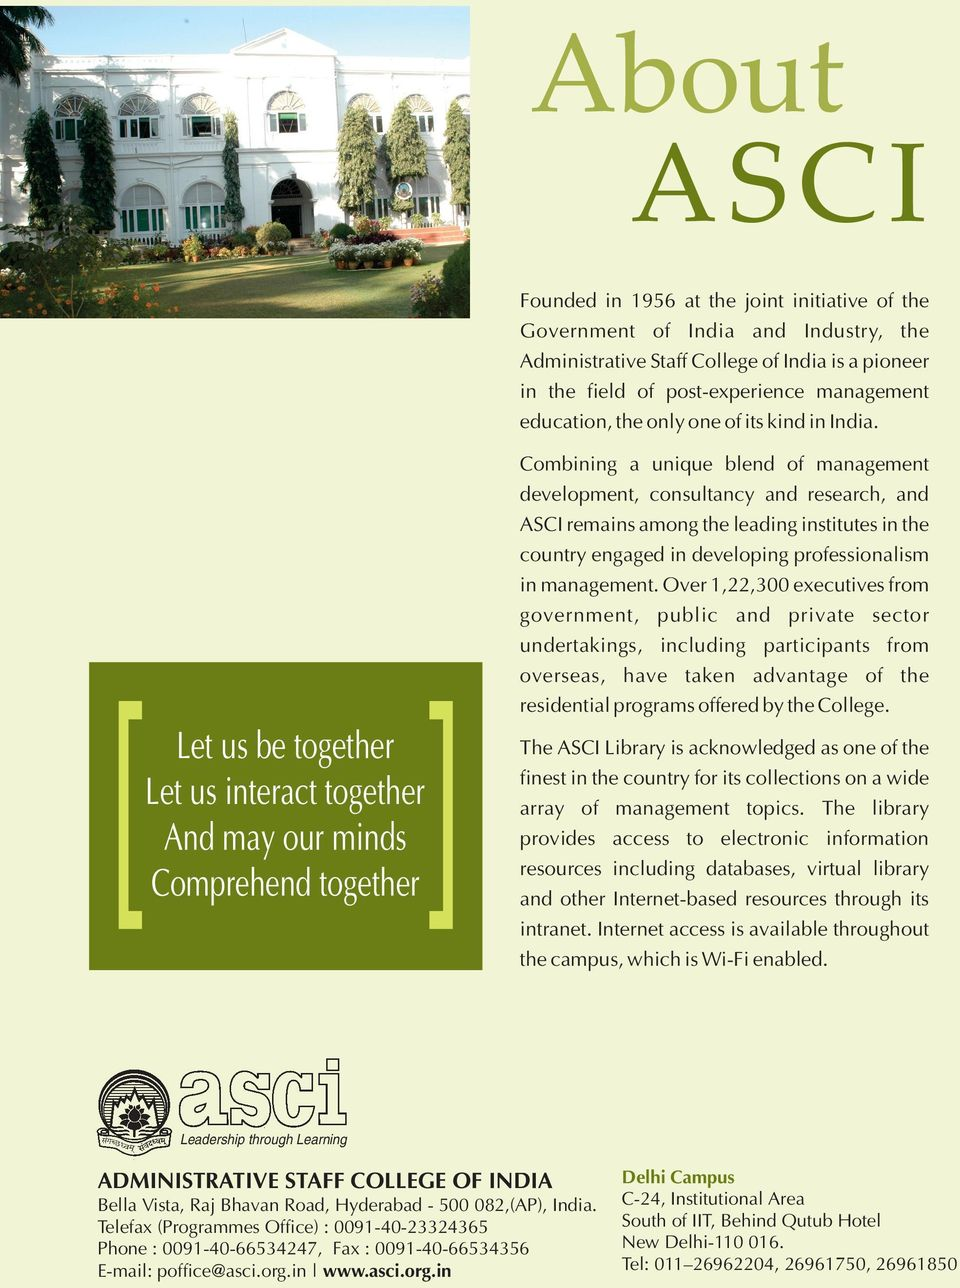 Let us be together Let us interact together And may our minds Comprehend together Combining a unique blend of management development, consultancy and research, and ASCI remains among the leading